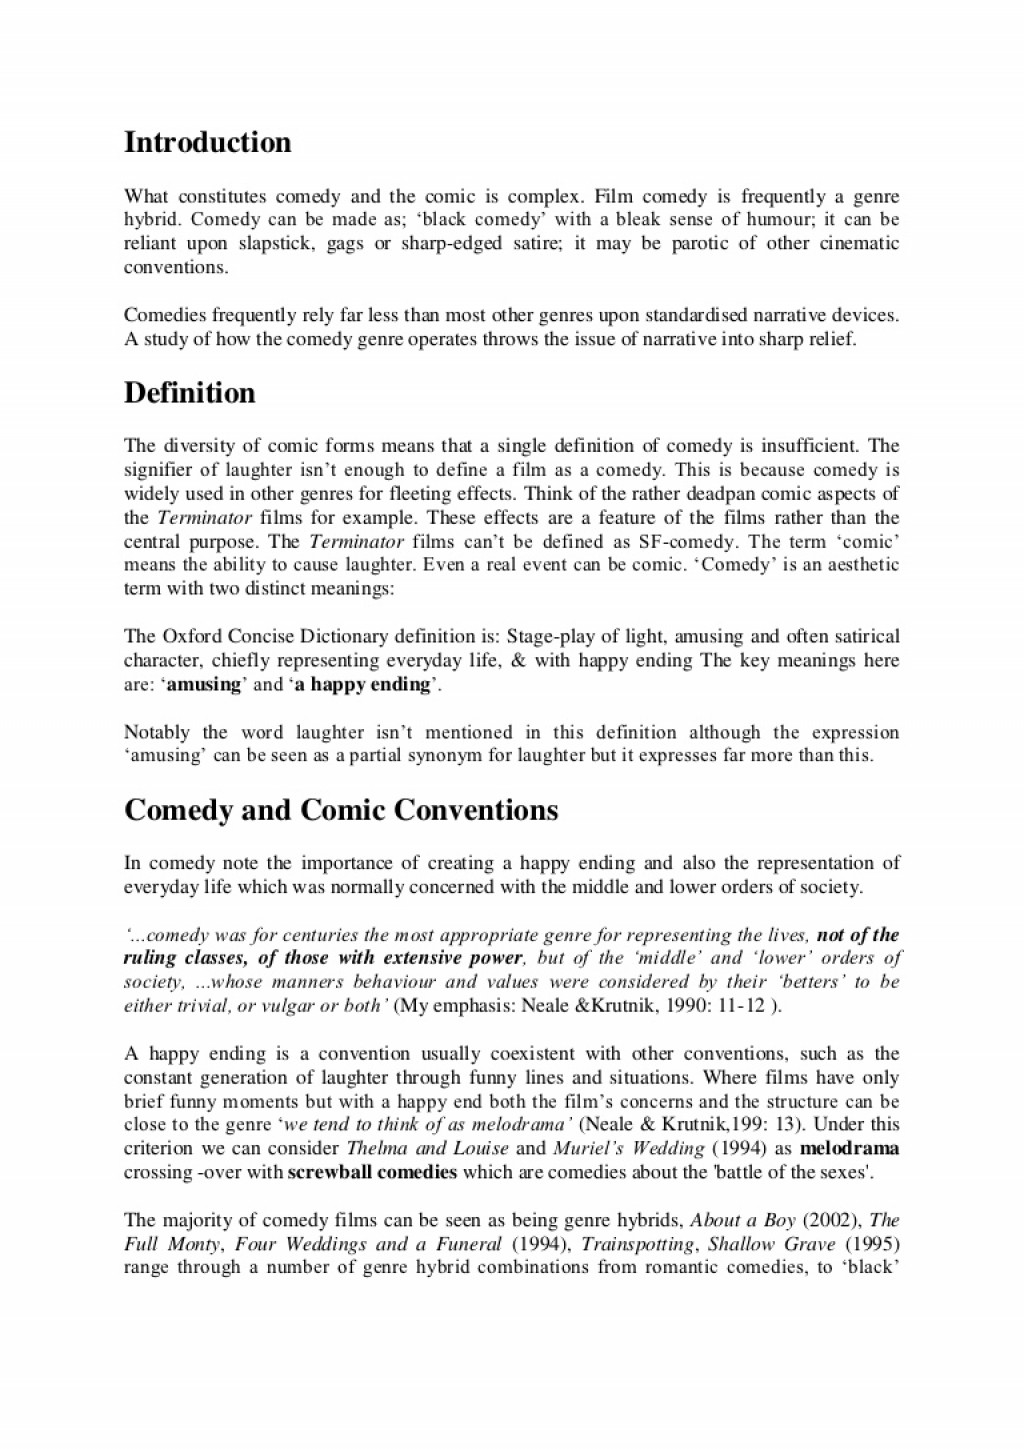 003 Comedyconventionsessay Phpapp01 Thumbnail Ending An Essay Excellent Ways To End Expository With A Rhetorical Question Large